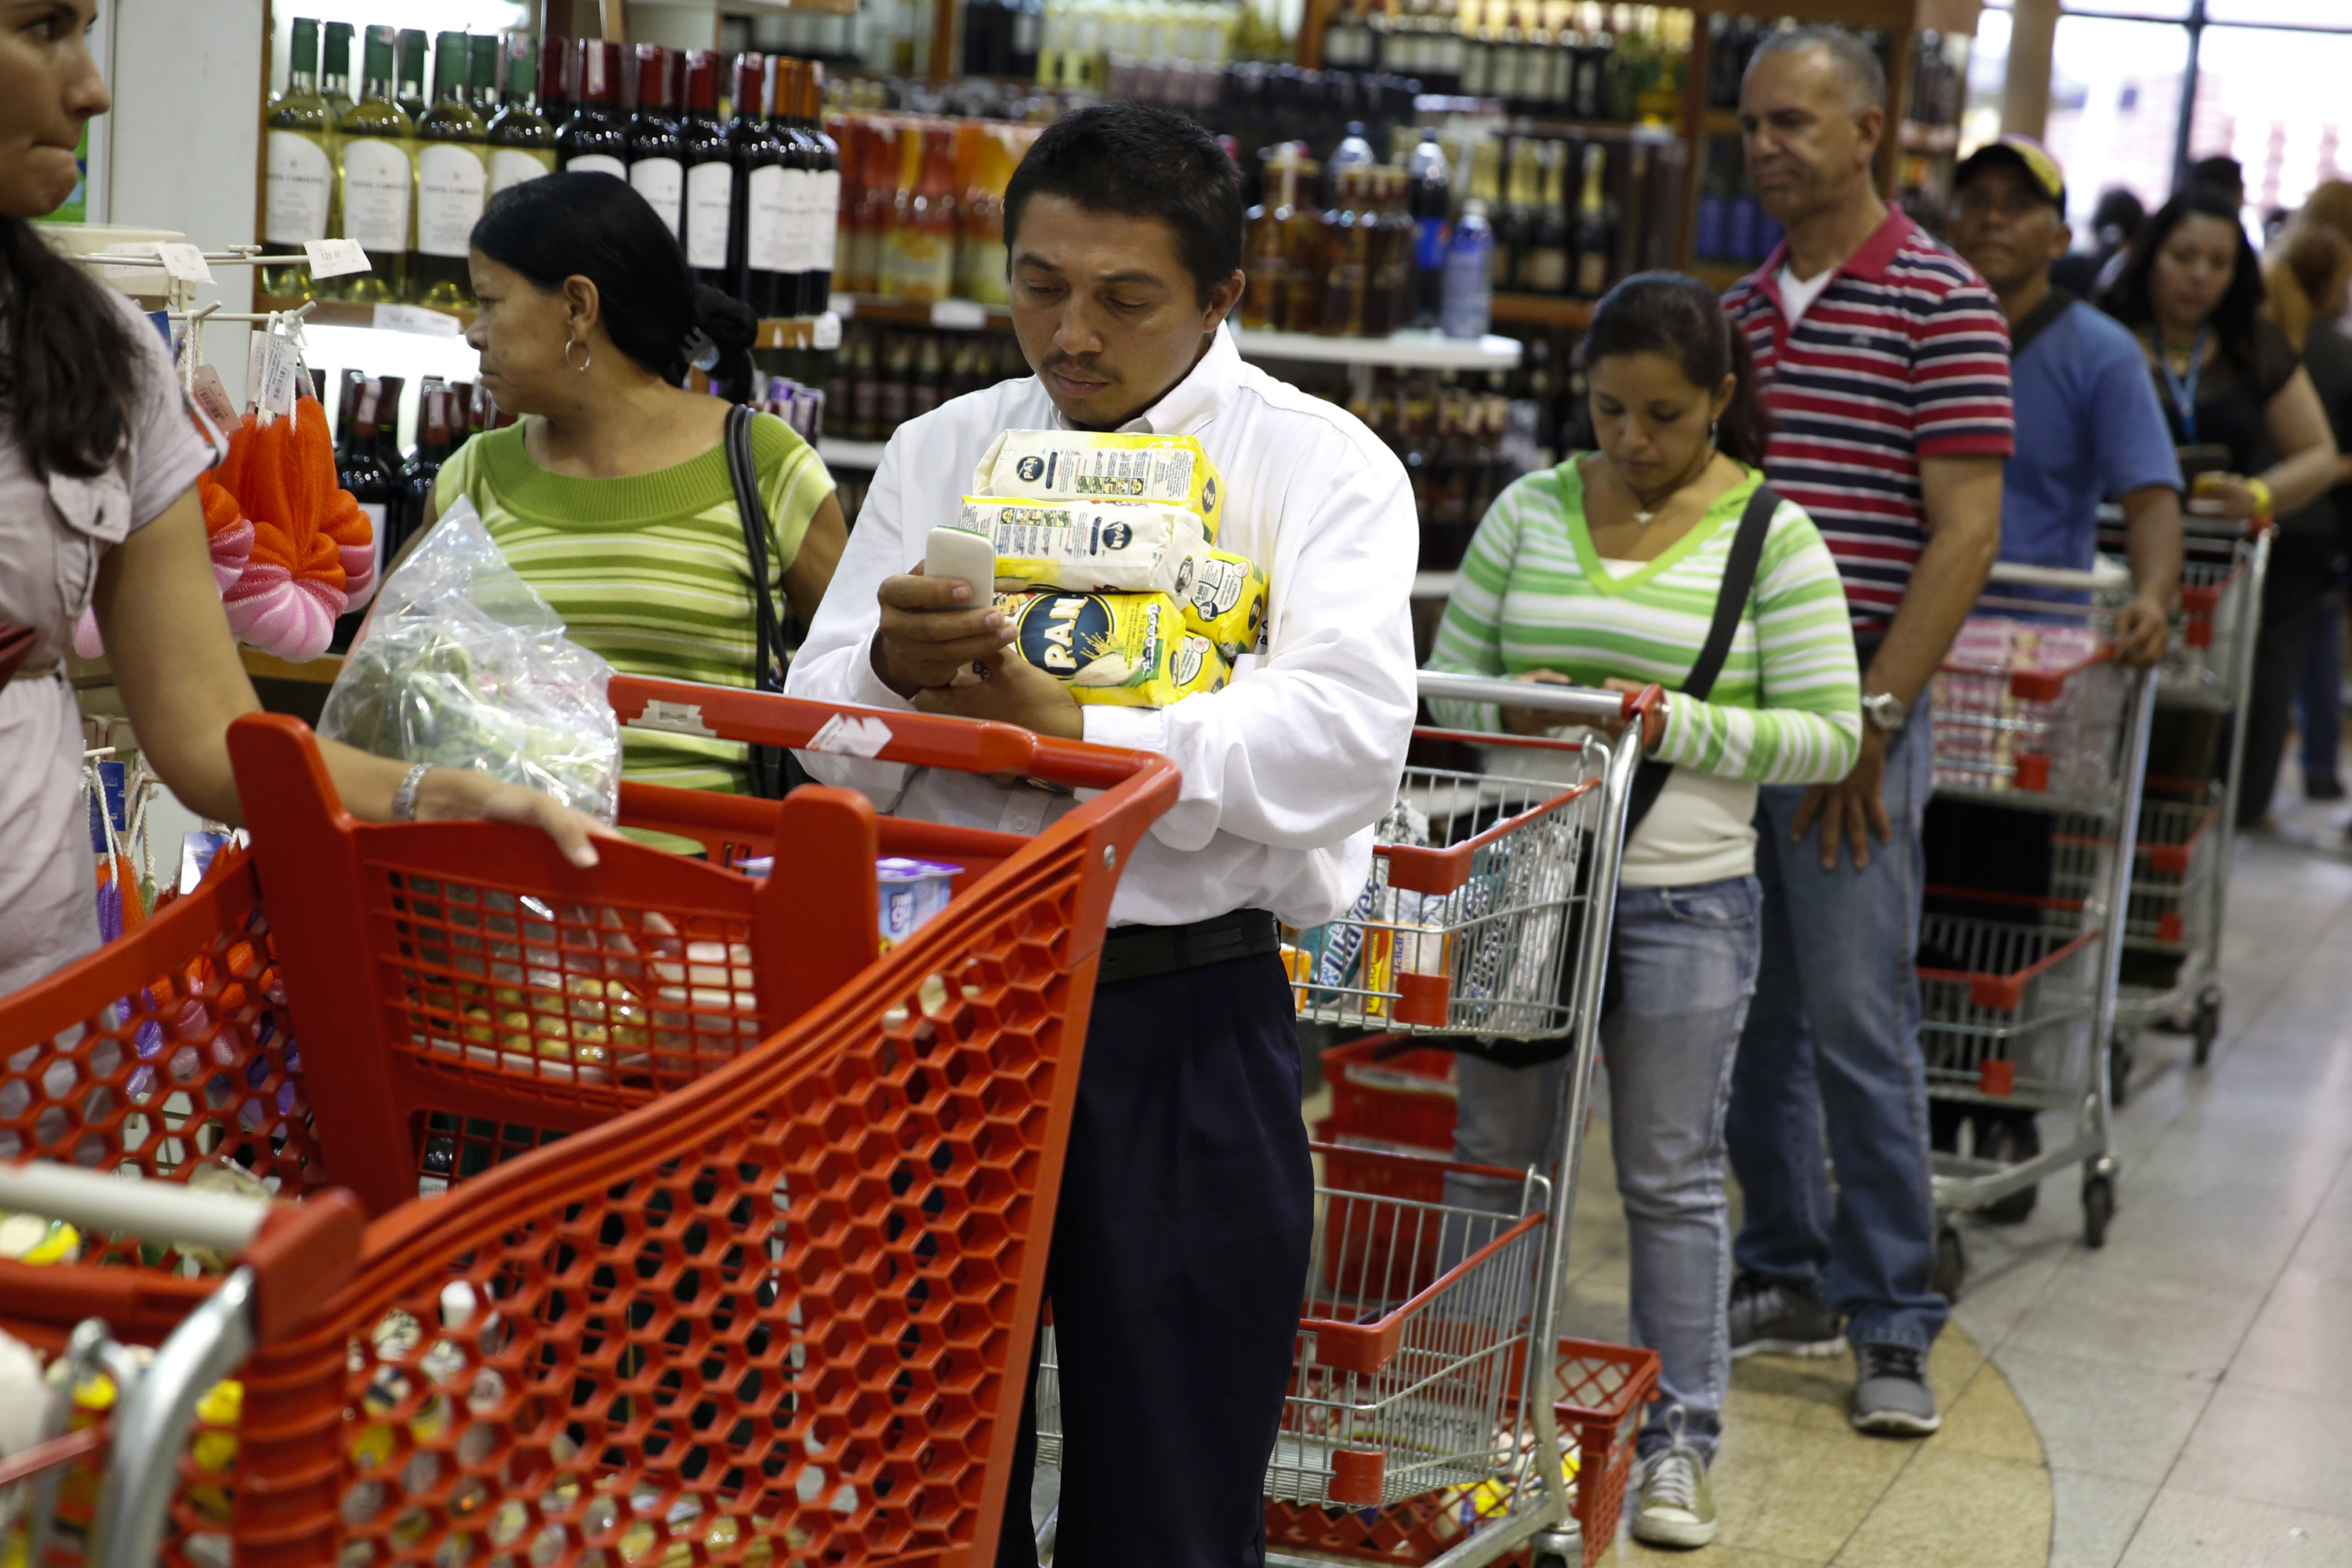 People stand at the checkout line at a supermarket in Caracas on Aug. 21, 2014.